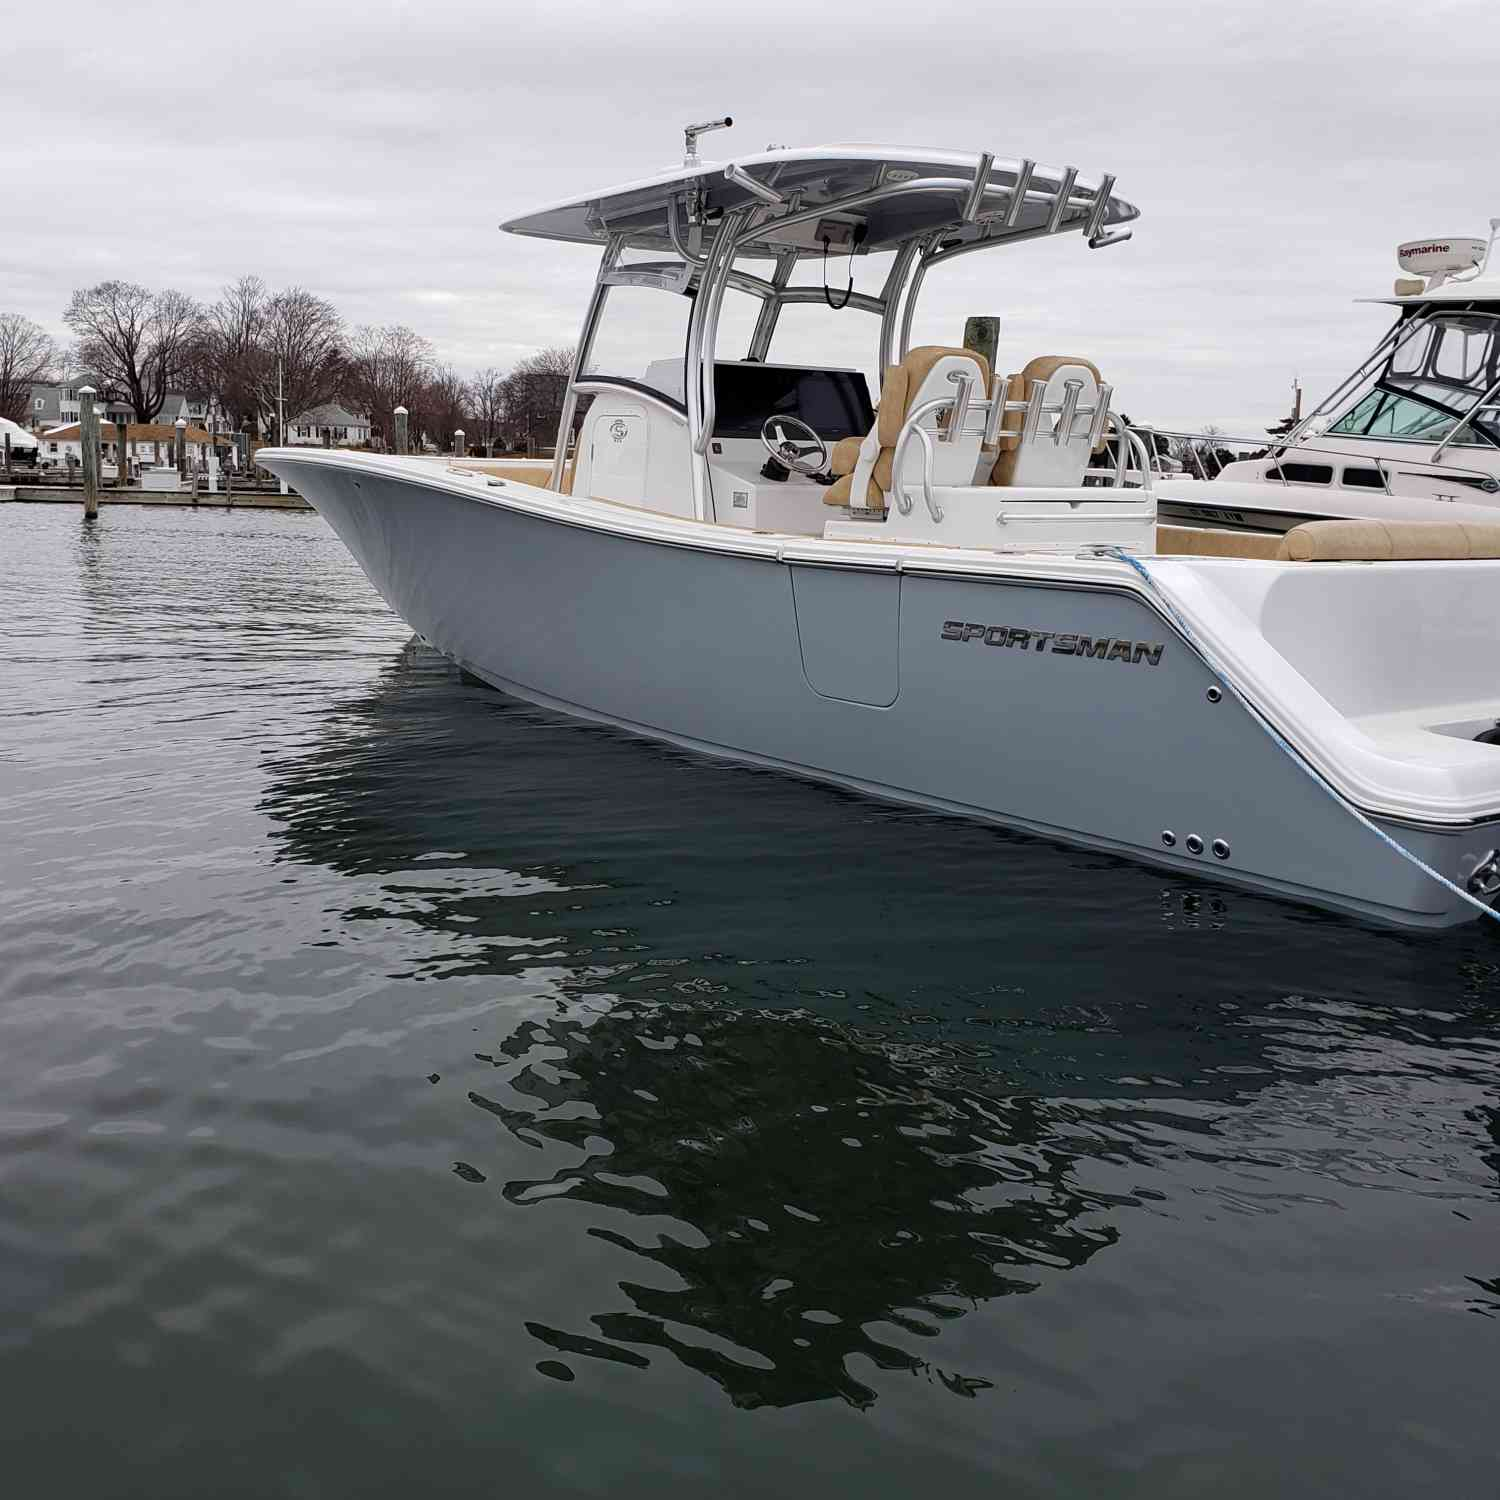 Title: At the dock - On board their Sportsman Open 312 Center Console - Location: Niantic ct. Participating in the Photo Contest #SportsmanApril2019